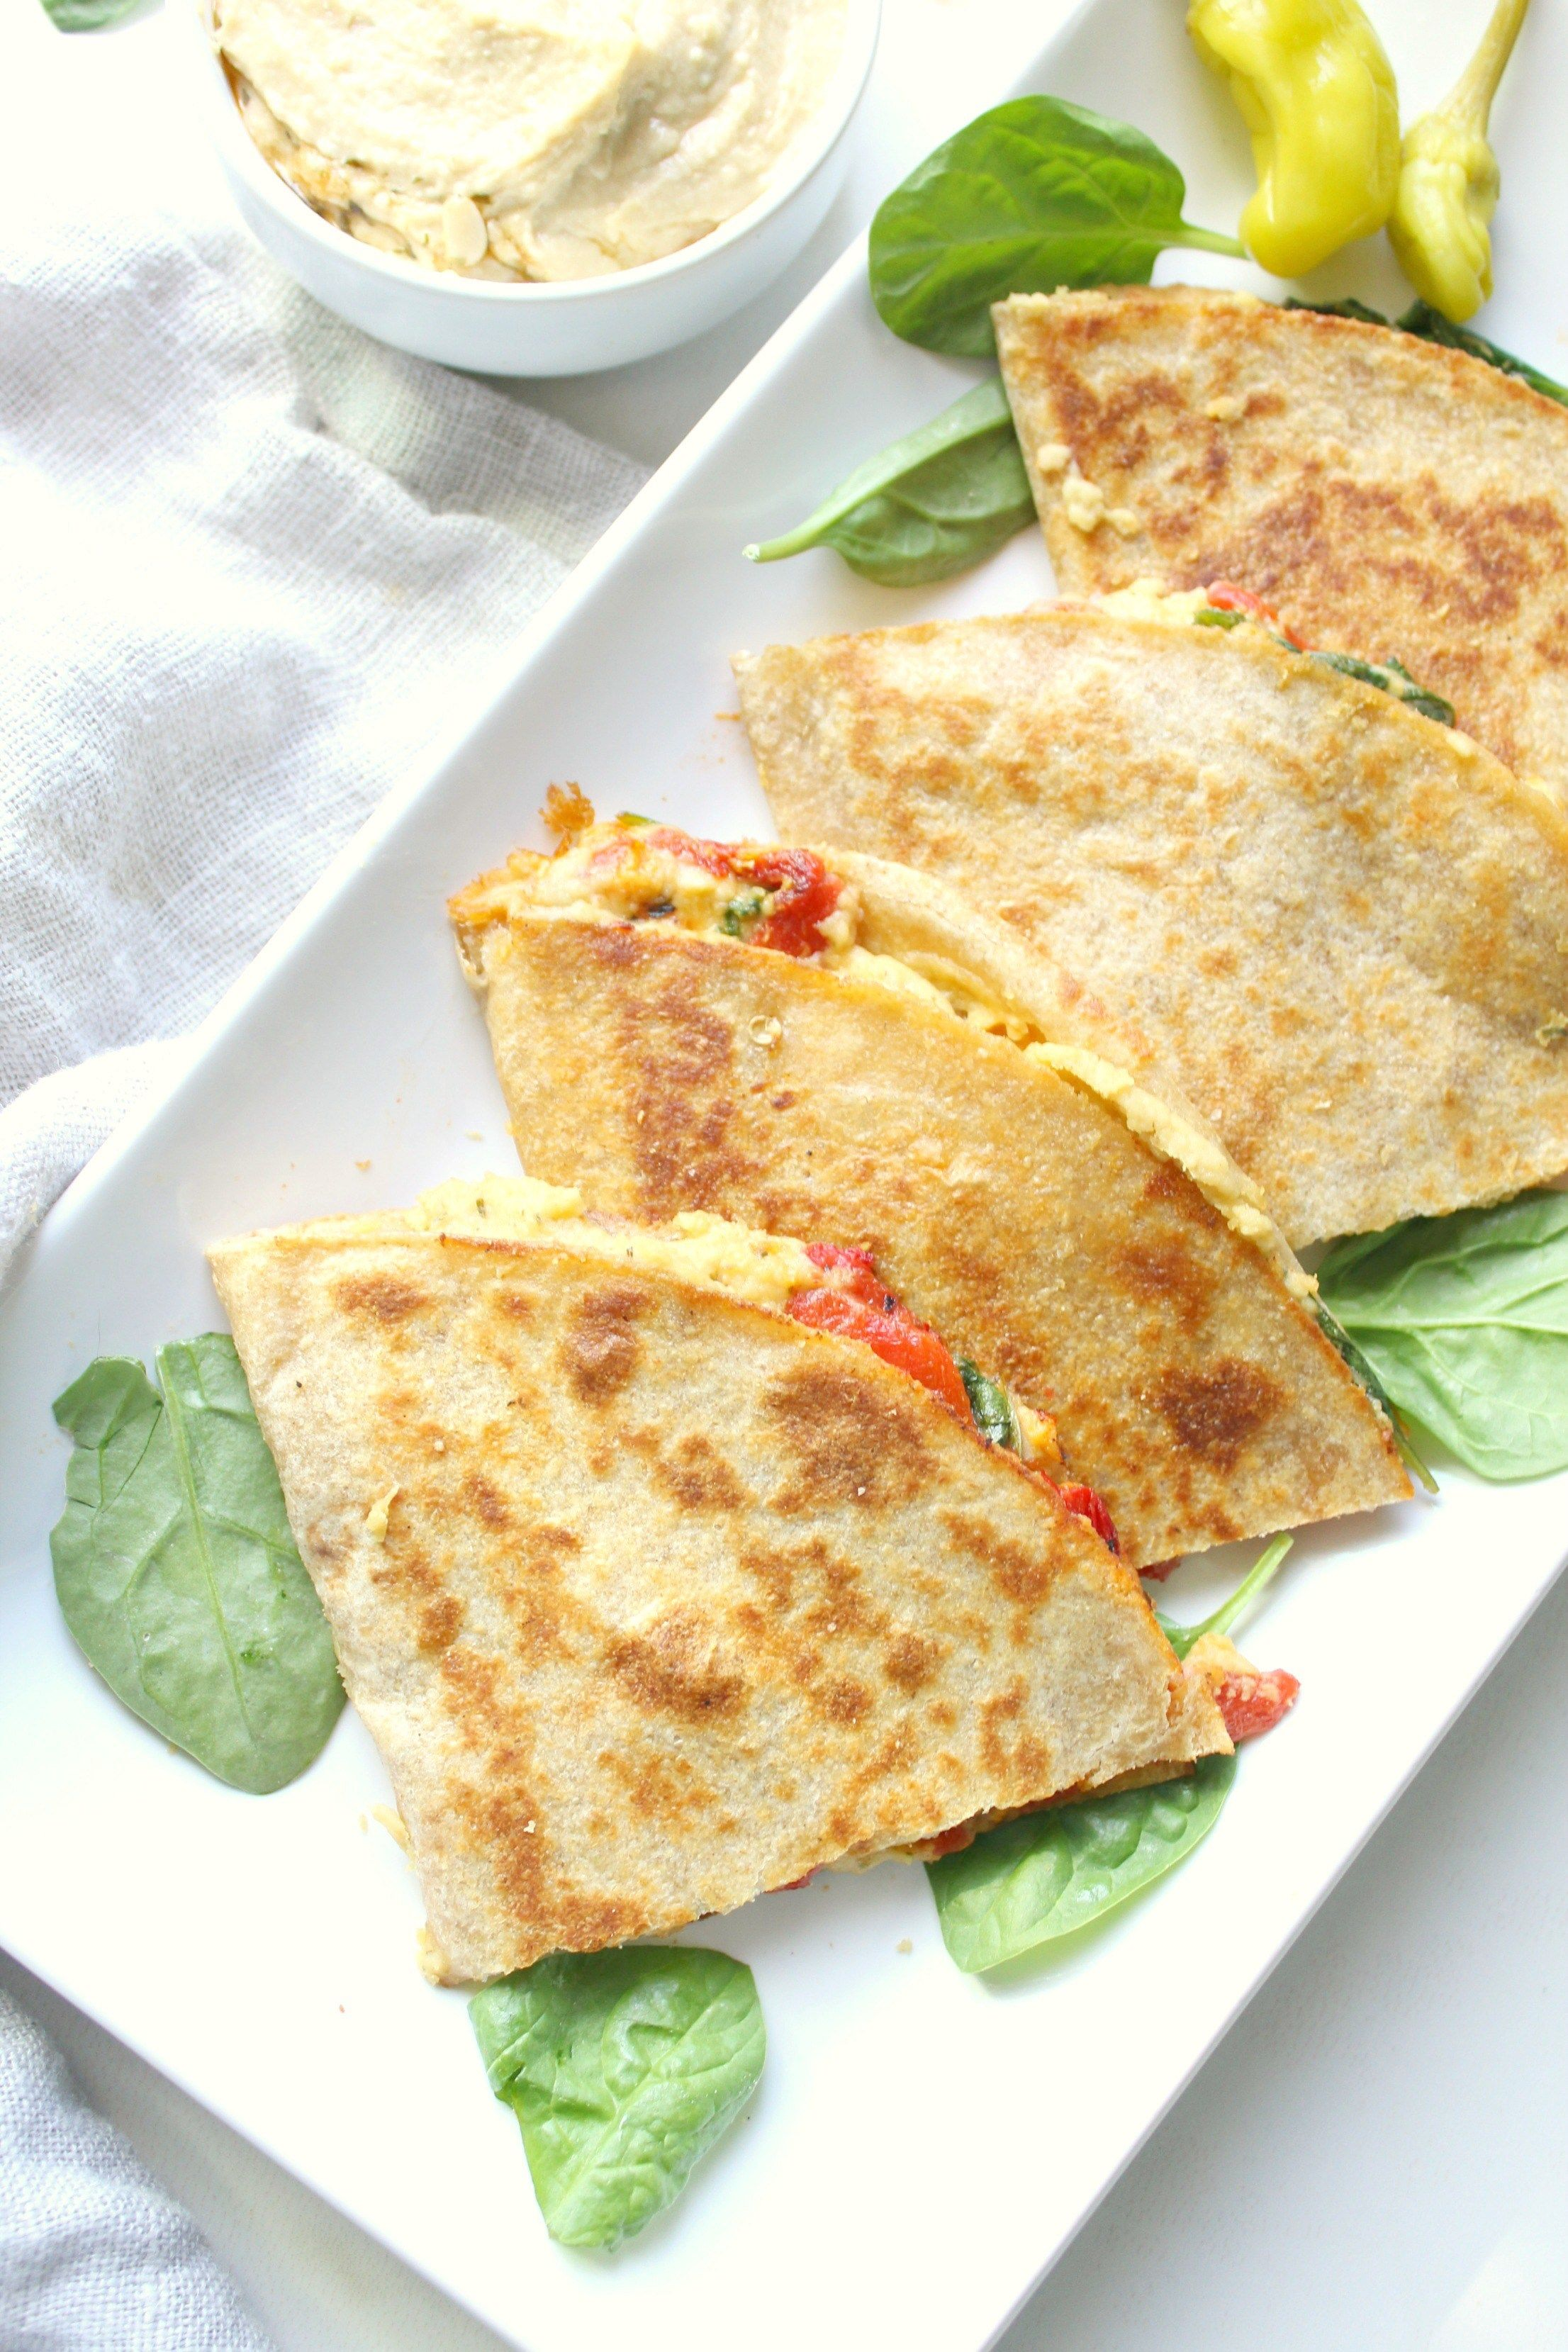 Simple Vegan Hummus Quesadillas